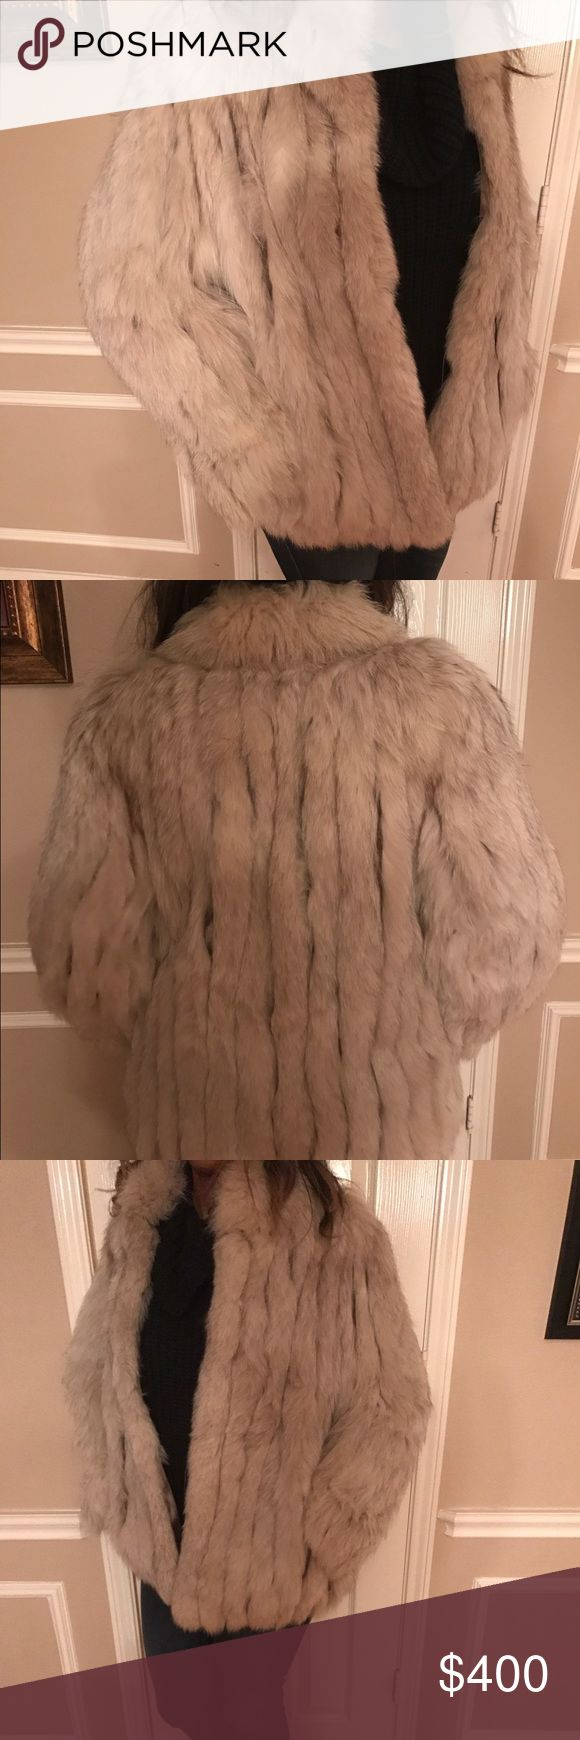 Vintage Scandinavian Blue Fox Fur Coat In very good pre-owned condition from my grandmother. This beautiful Saga Silver Fox jacket is made with alternating strips of beautiful silver tipped fox and ivory suede which makes it a more slimming fox fur jacket than most.  It is lined with a beautiful gold 100% acetate material that is in near perfect condition. Hidden side pockets. The size of the coat is a Large. Price is $400 or best offer.  Please note: color shown in photos may not be exact…